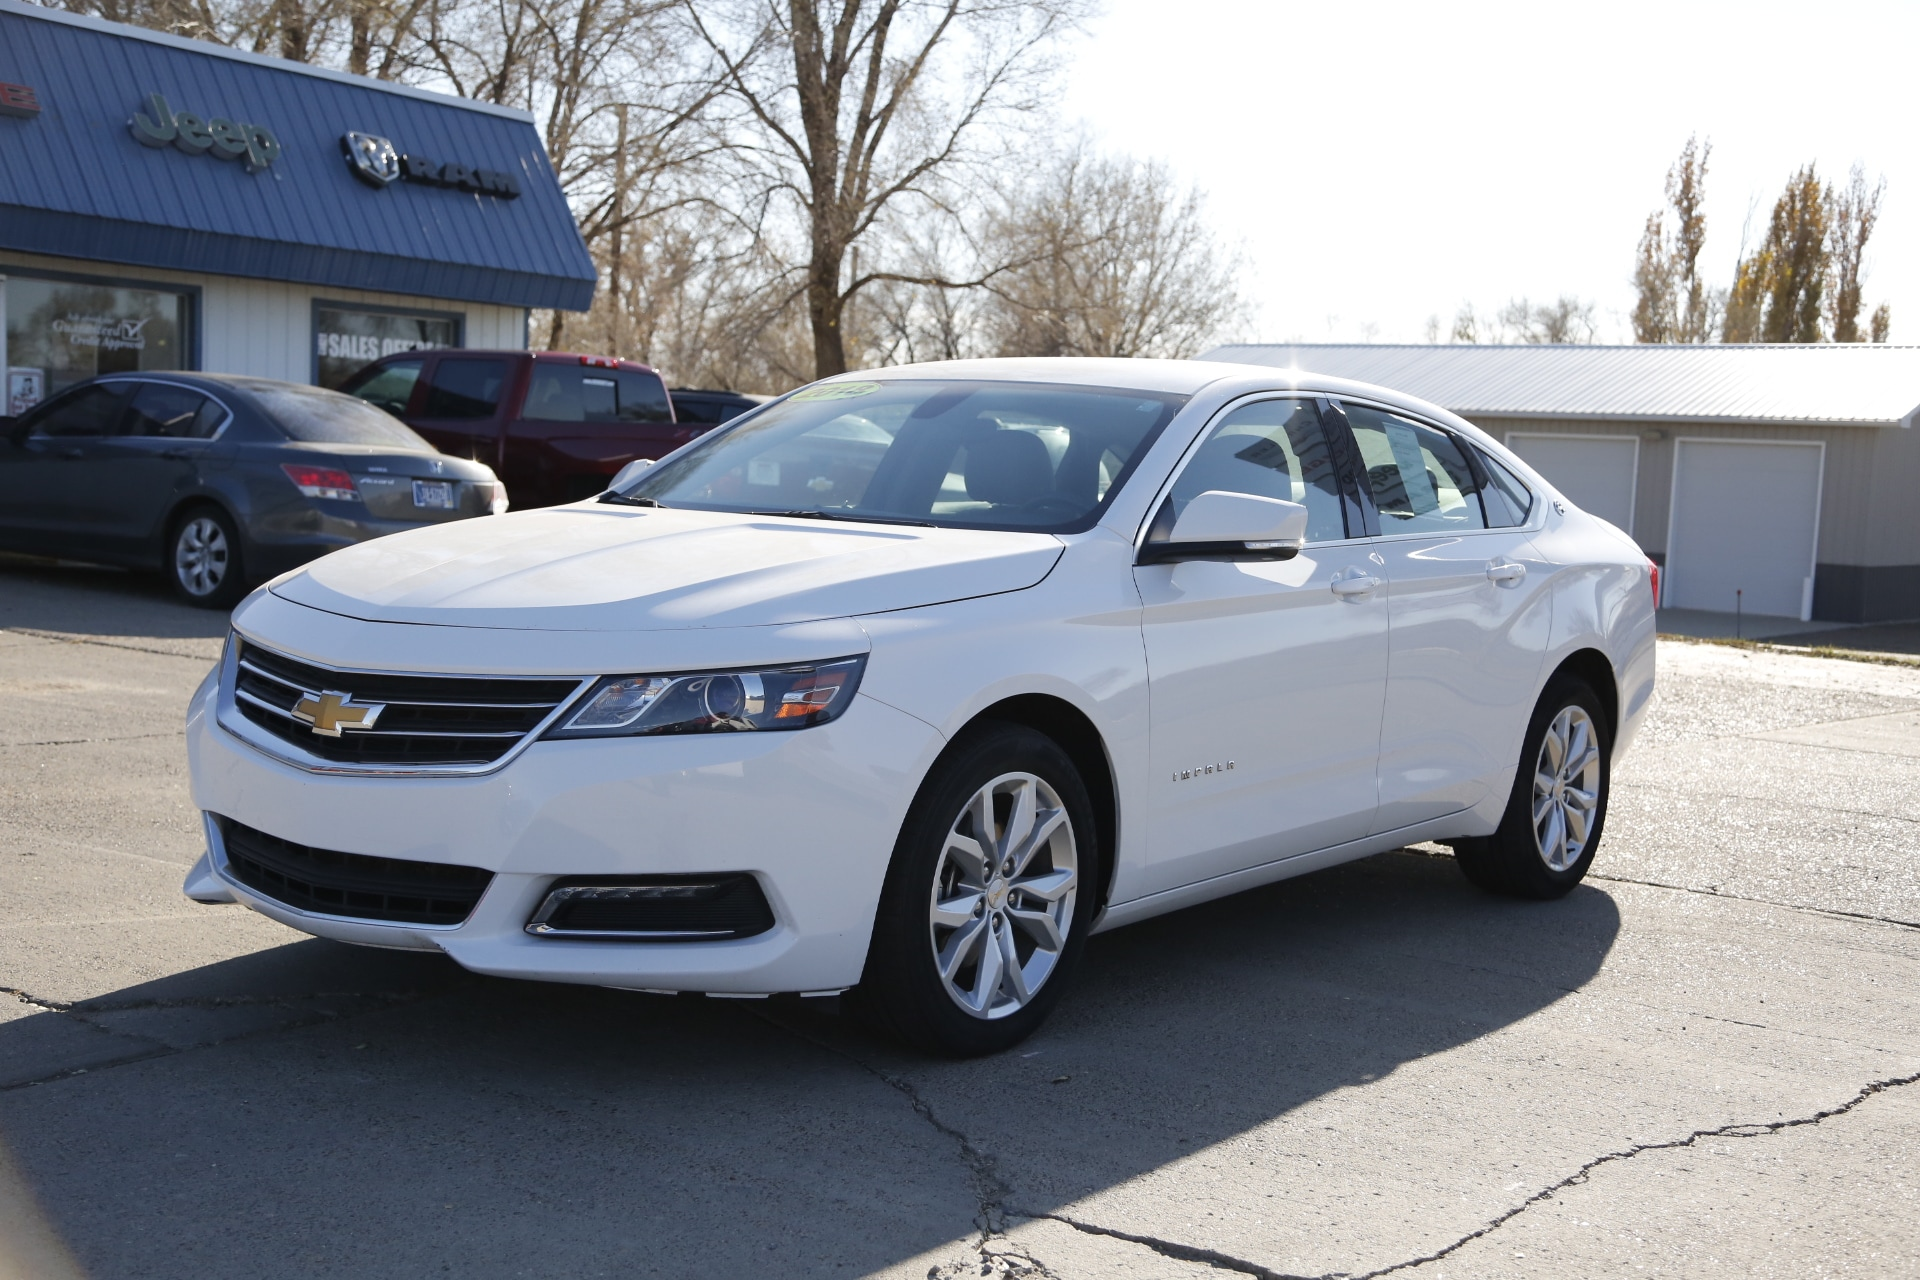 2018 Chevrolet Impala LT Car